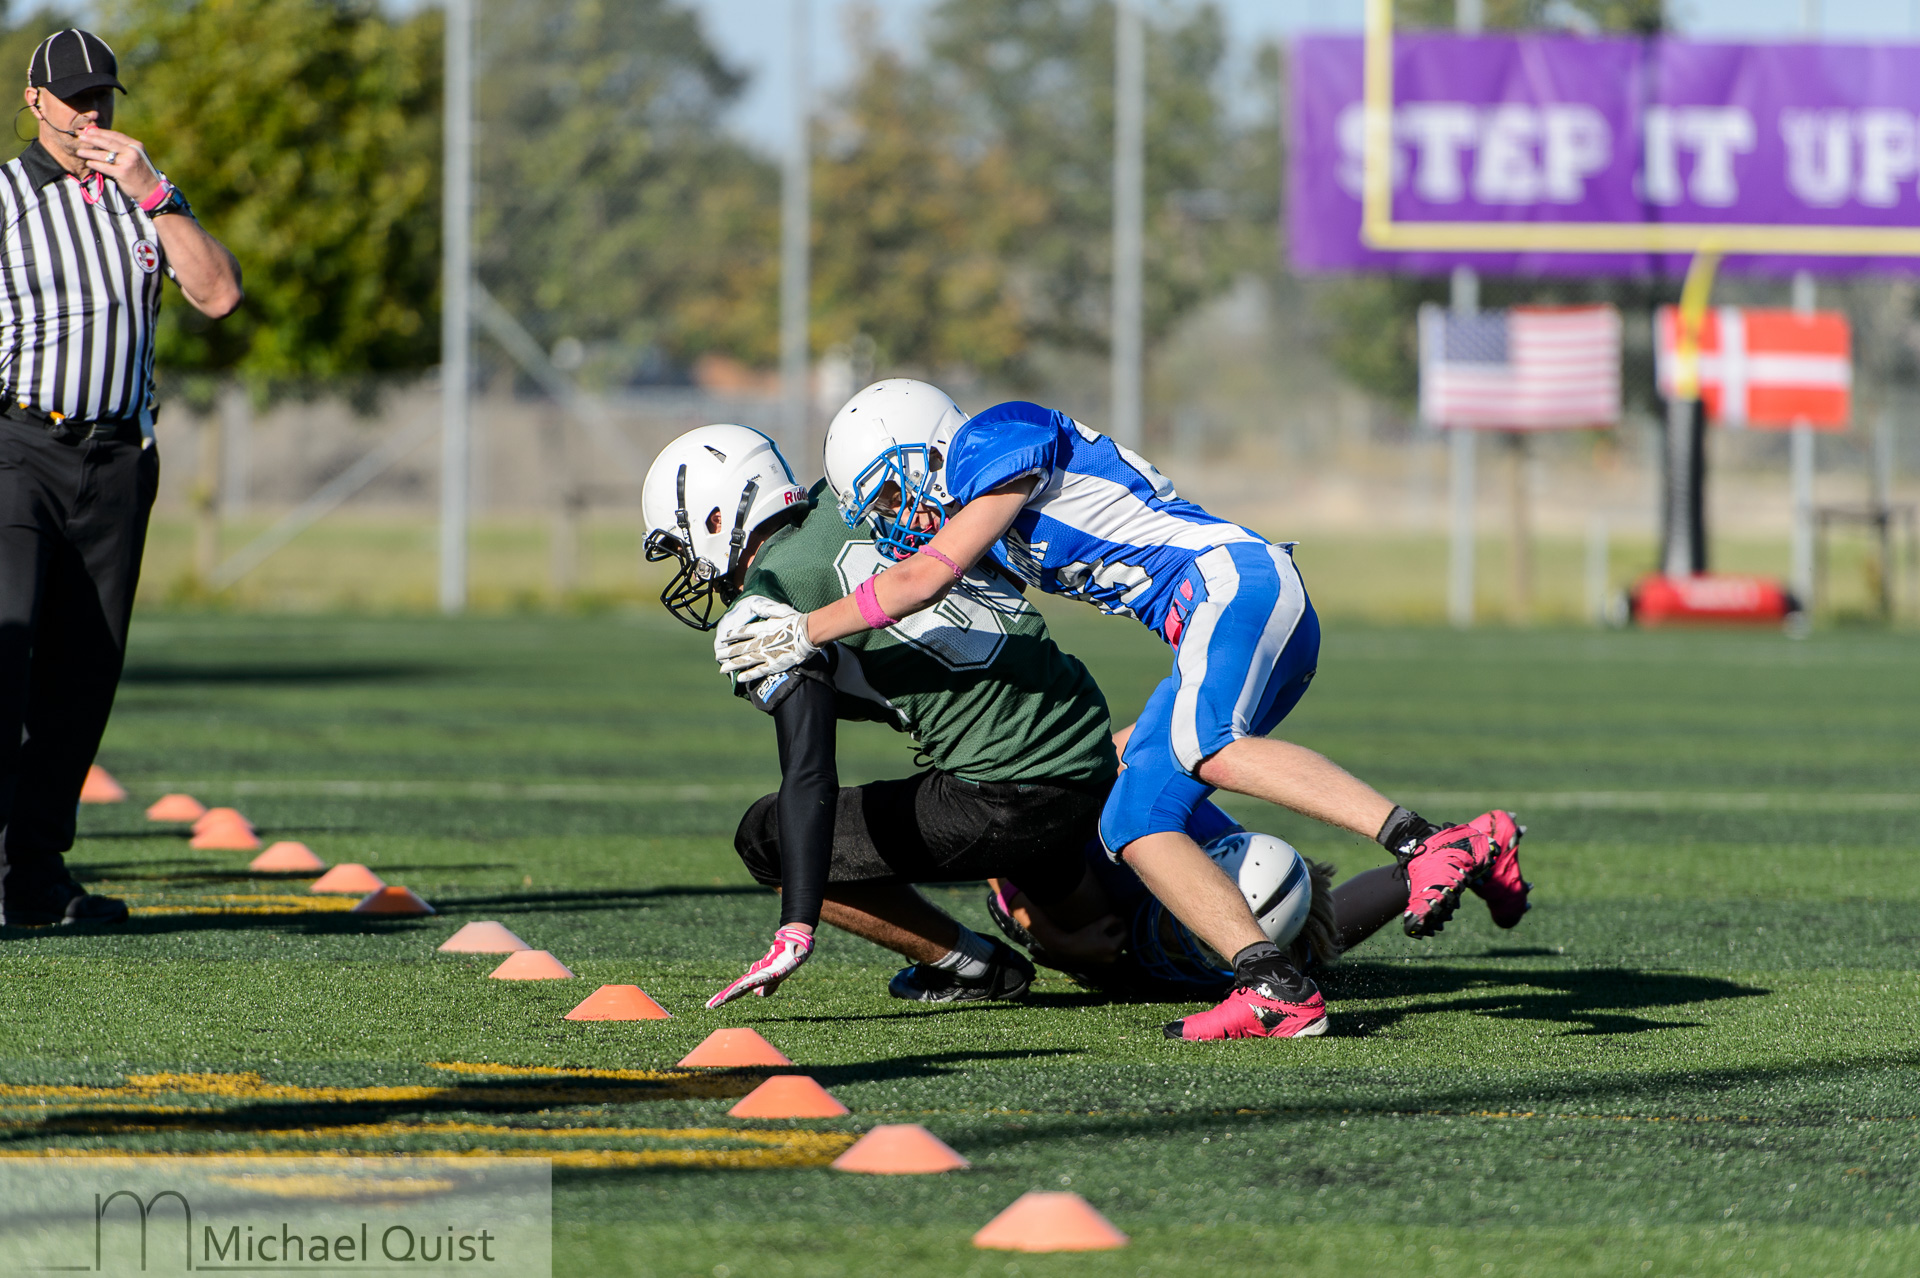 U16-RS-Bowl-2015-Ørestaden-Spartans-vs-Slagelse-Wolfpack-8